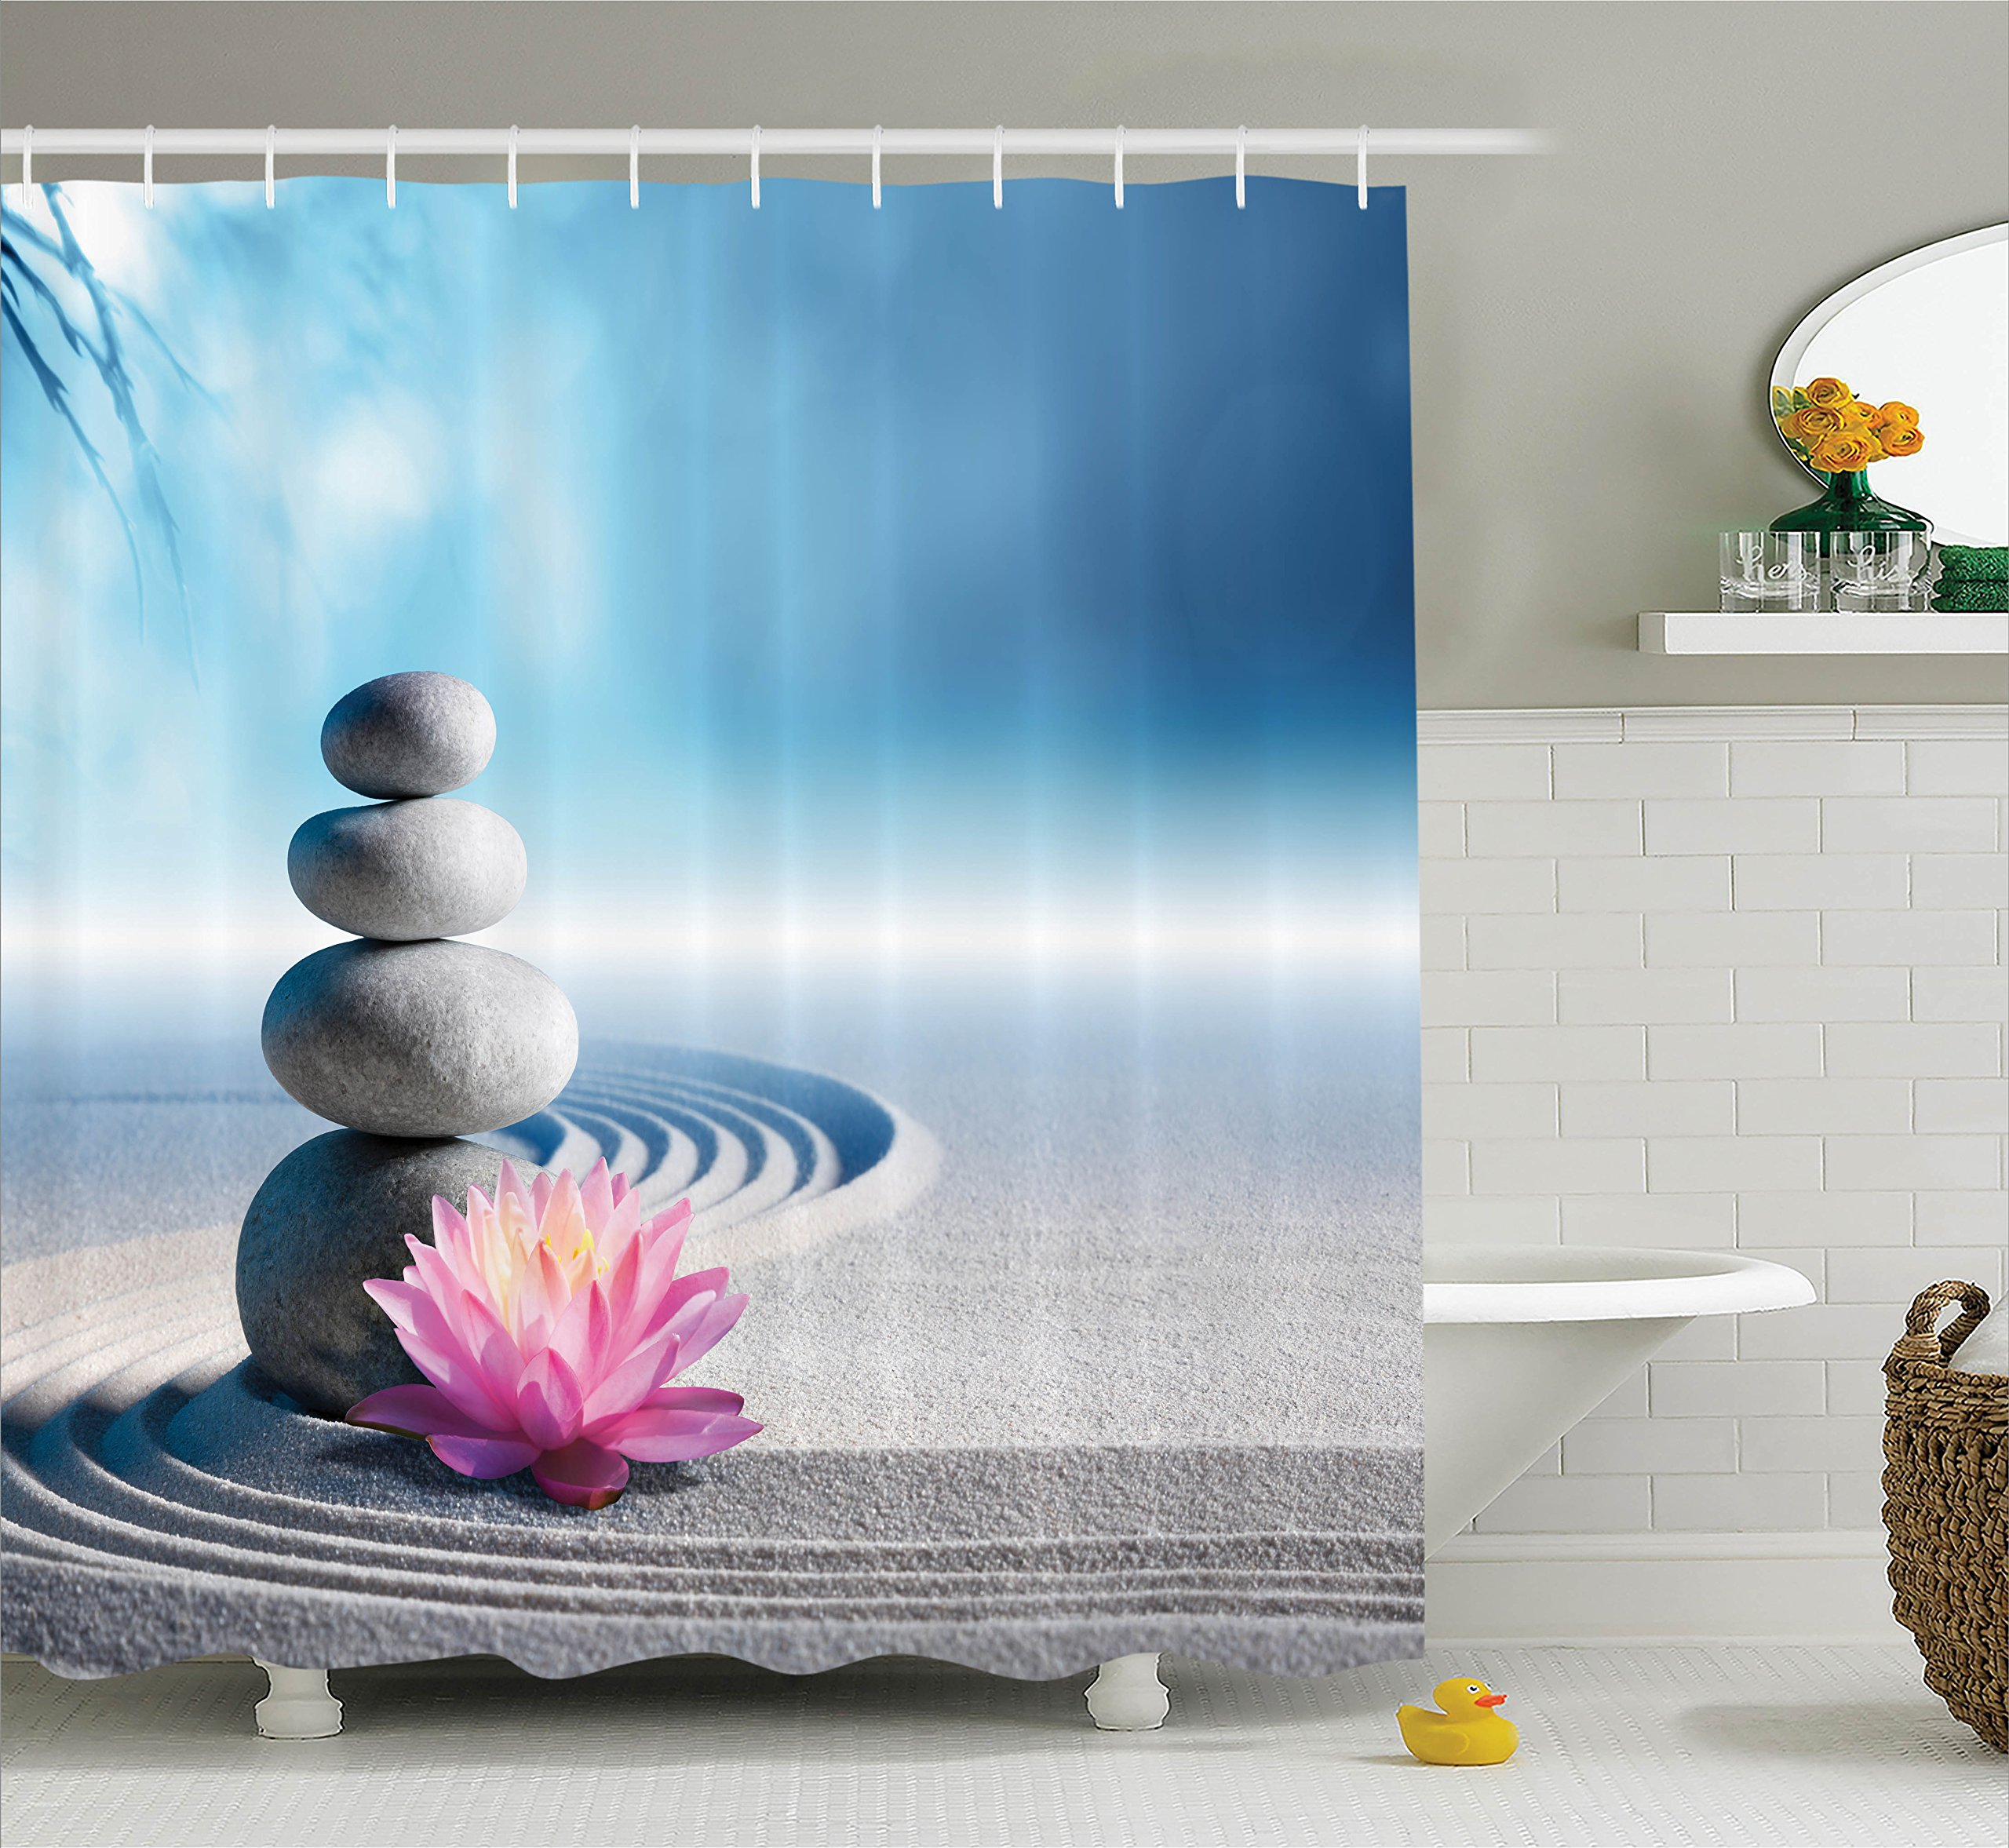 Ambesonne Spa Decor Shower Curtain Set, Stones and Lotus Flower Over Sand Meditation Harmony Balance Flourish Your Spirit Theme, Bathroom Accessories, 75 inches Long, Grey Blue Pink